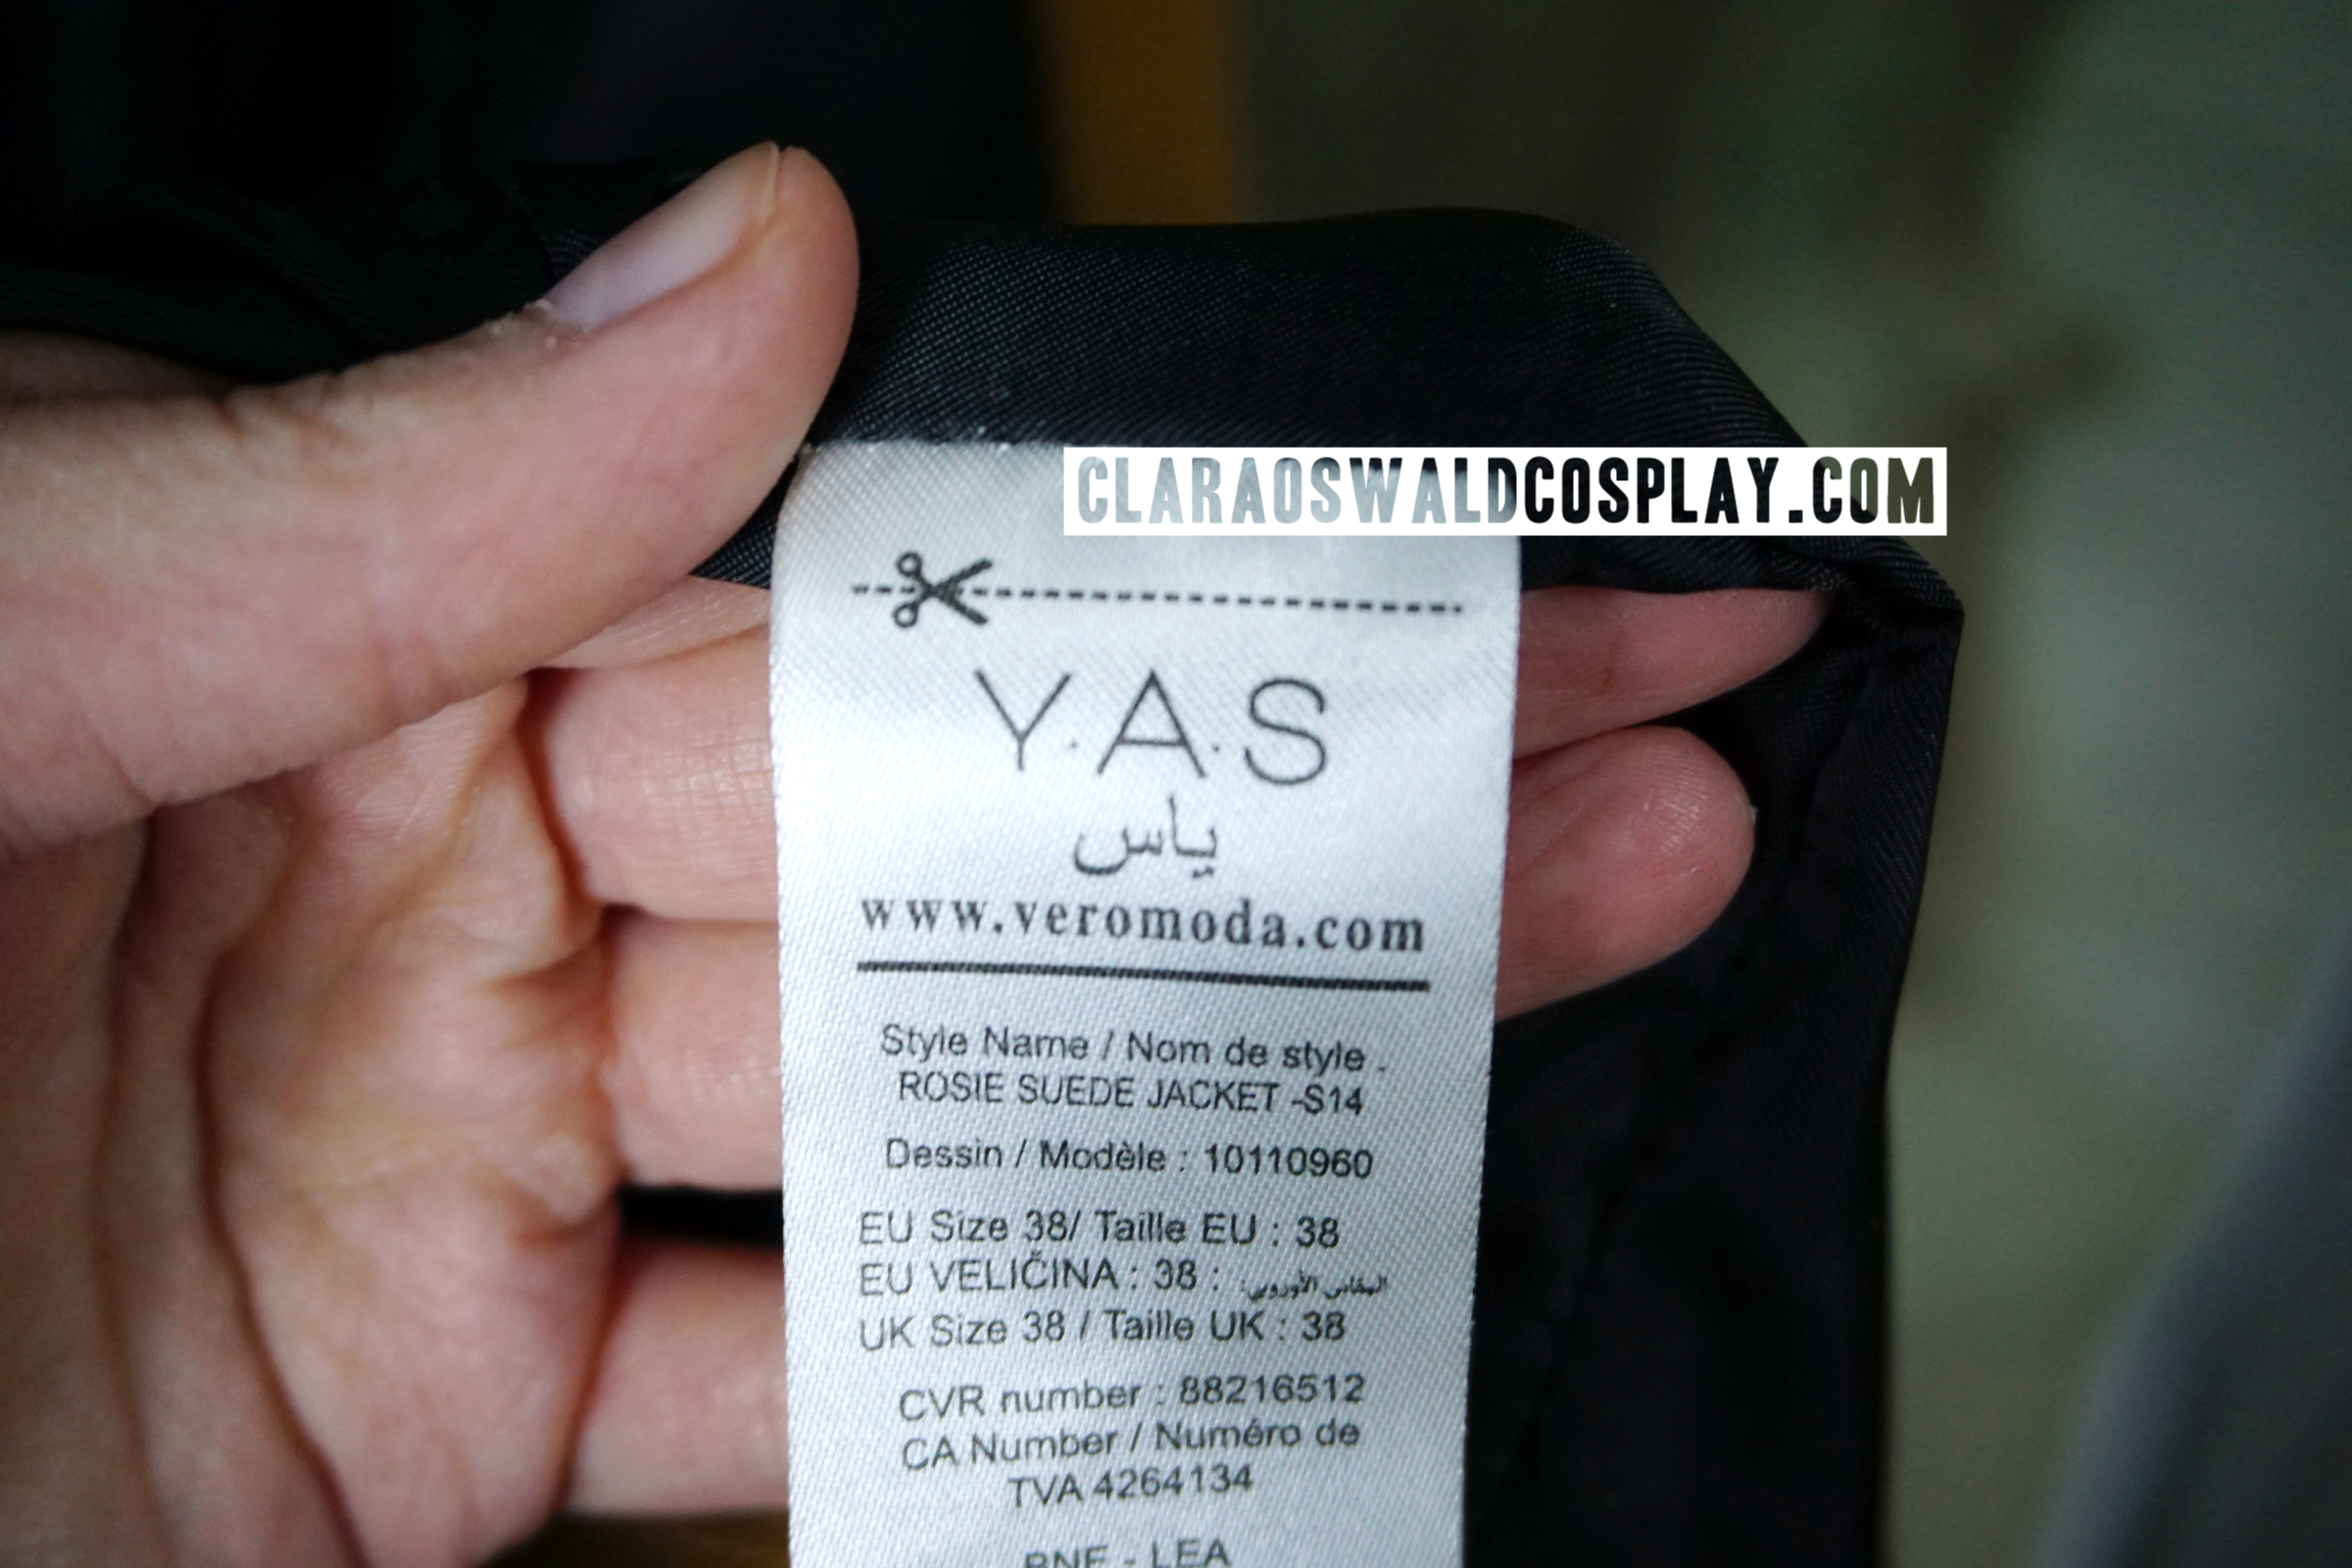 The Y.A.S. jacket was sold by Vero Moda